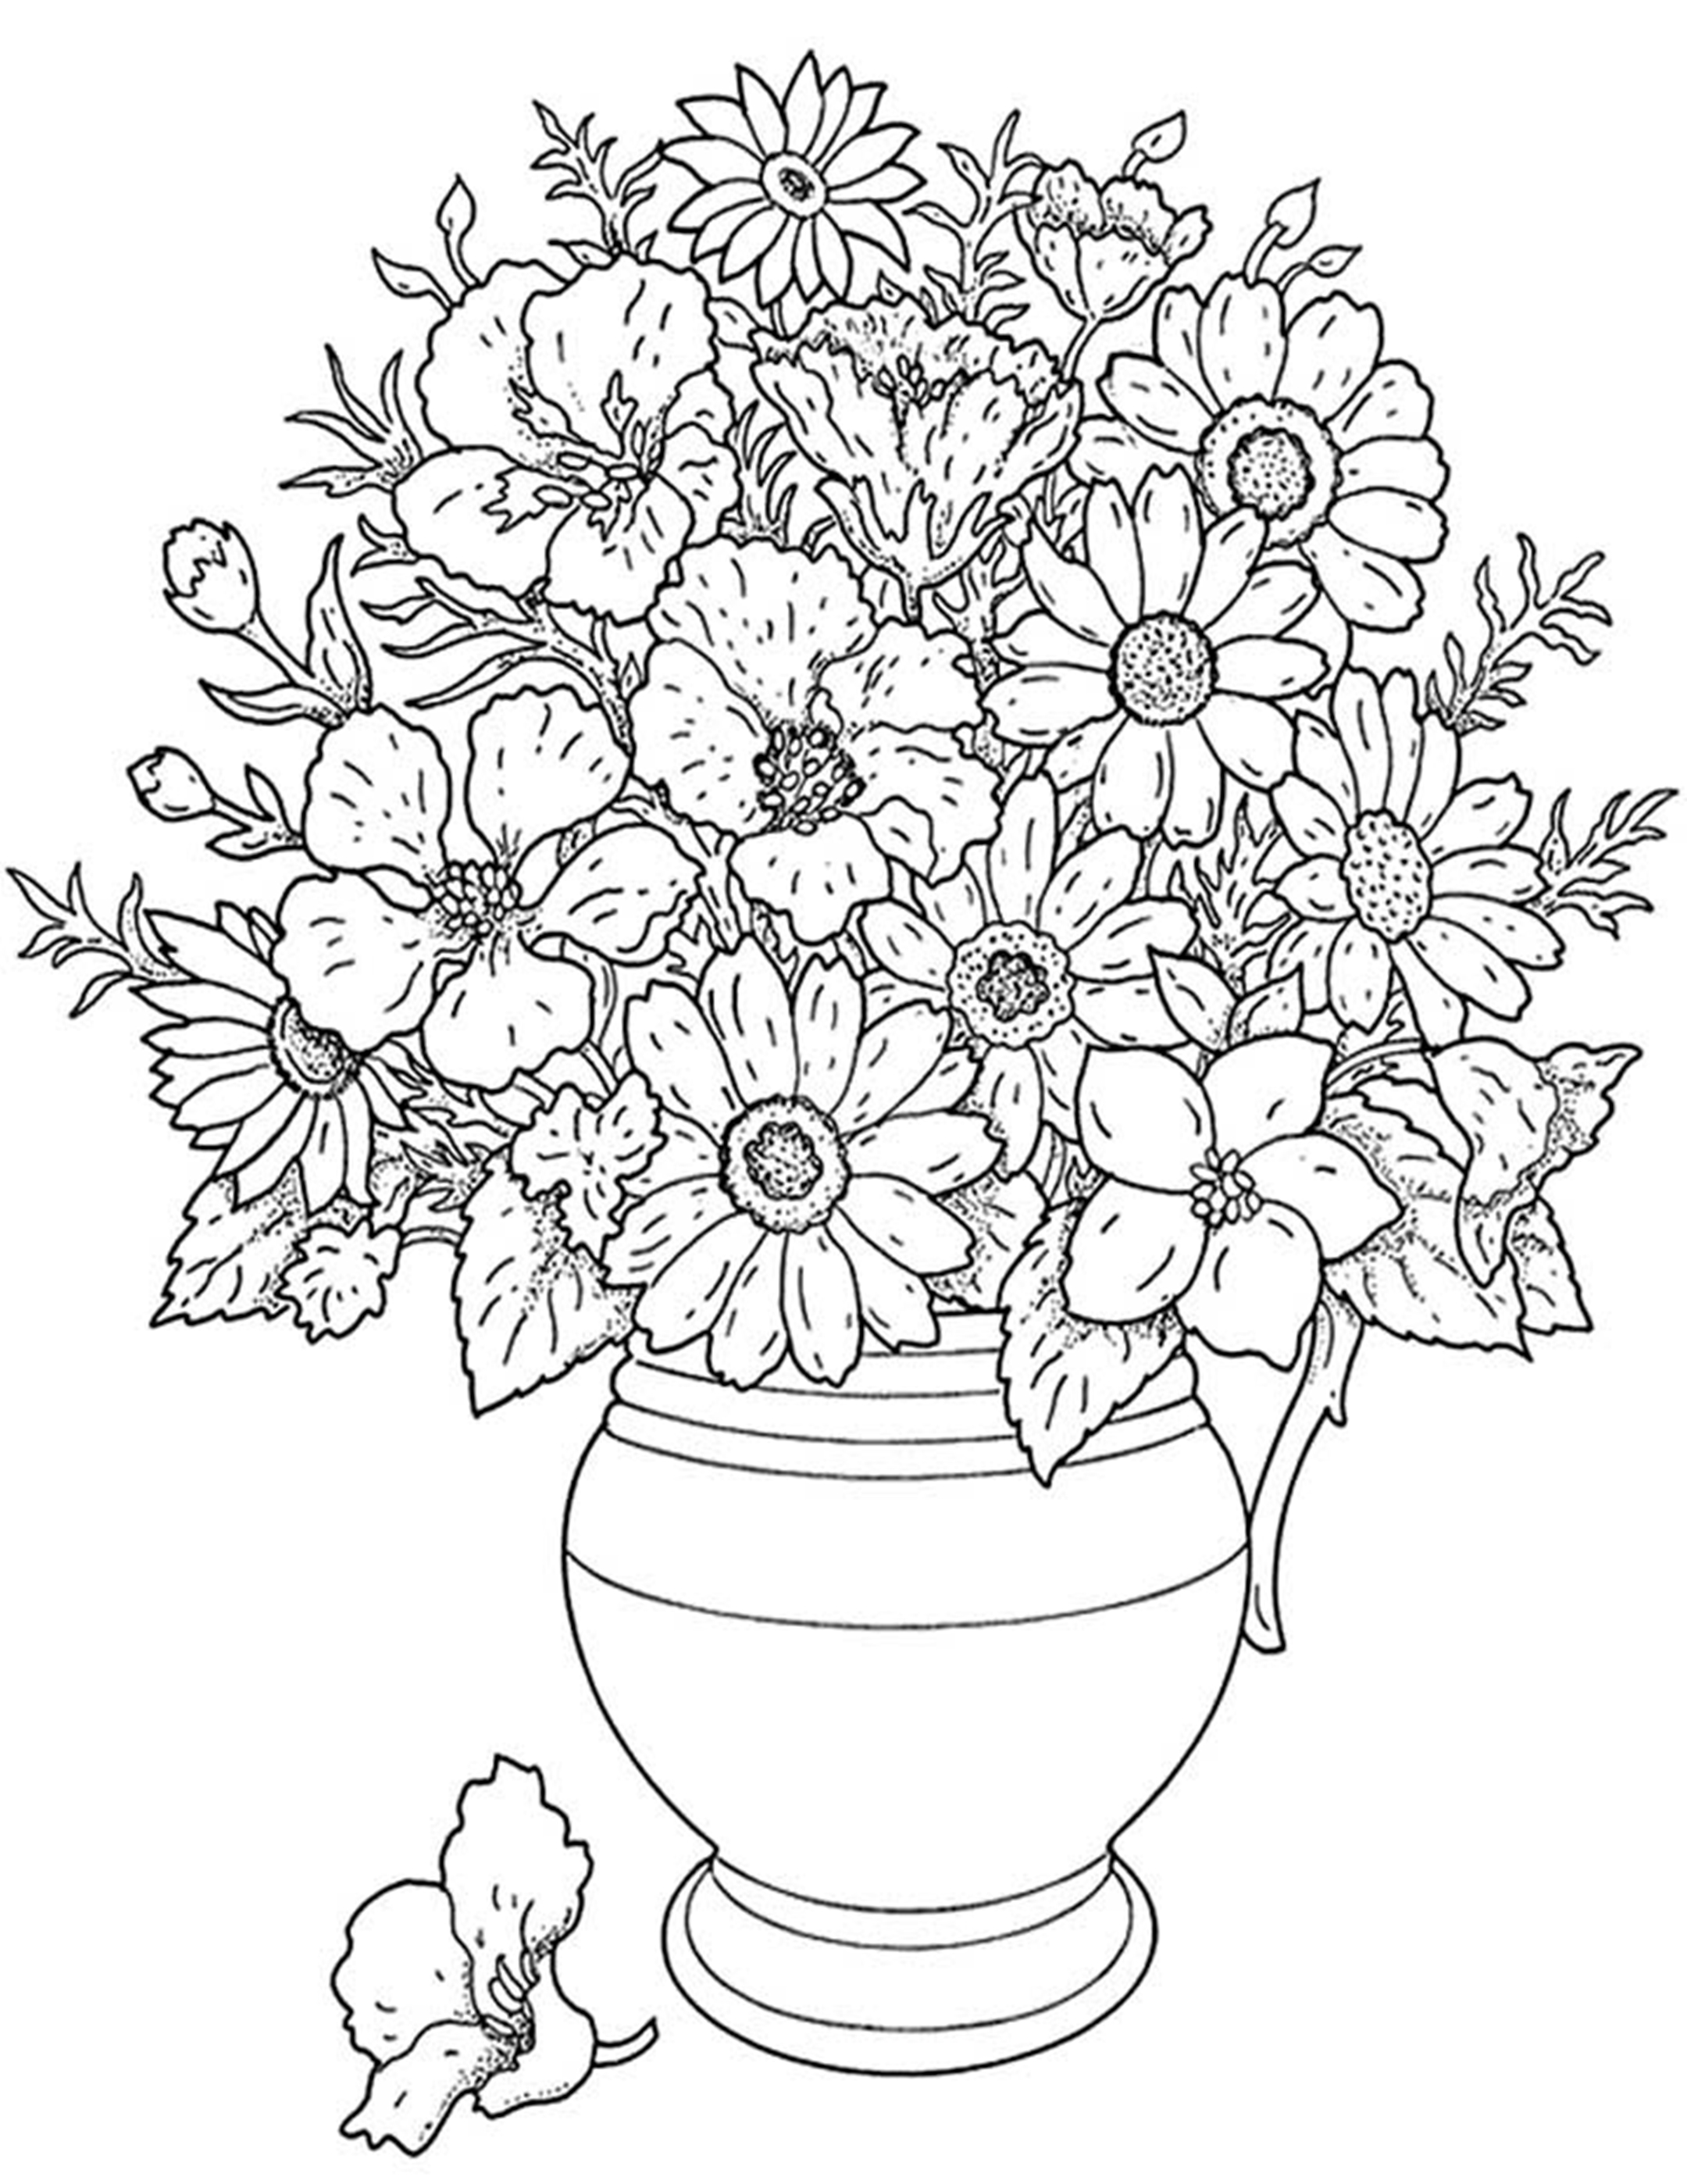 flower coloring sheets free free printable flower coloring pages for kids best free flower sheets coloring 1 1